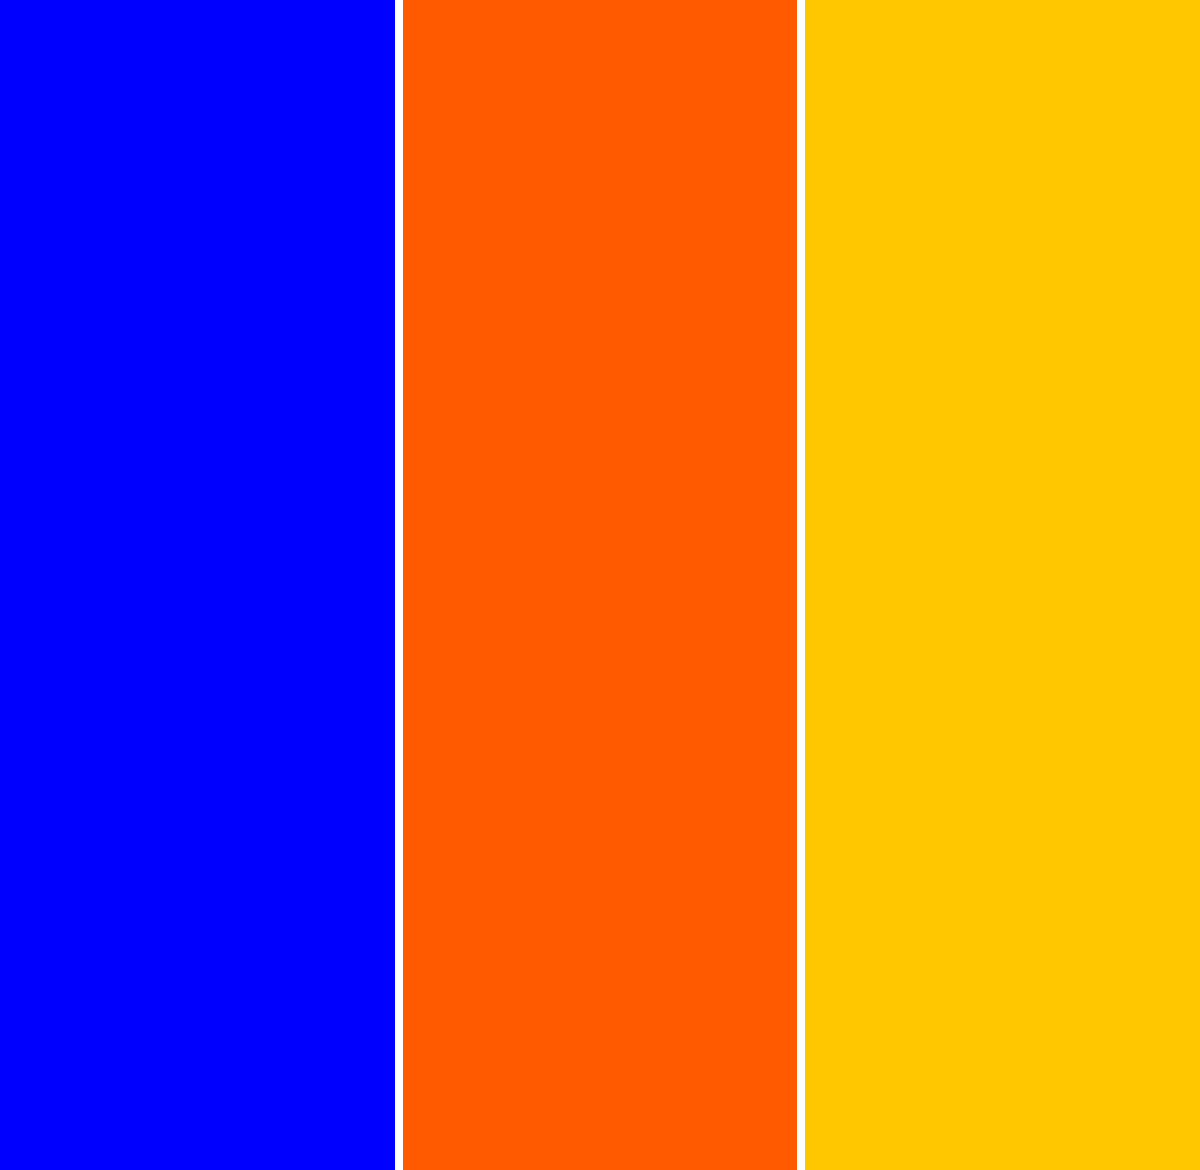 3 vertical bars of colour: Blue, red-orange, and yellow-orange